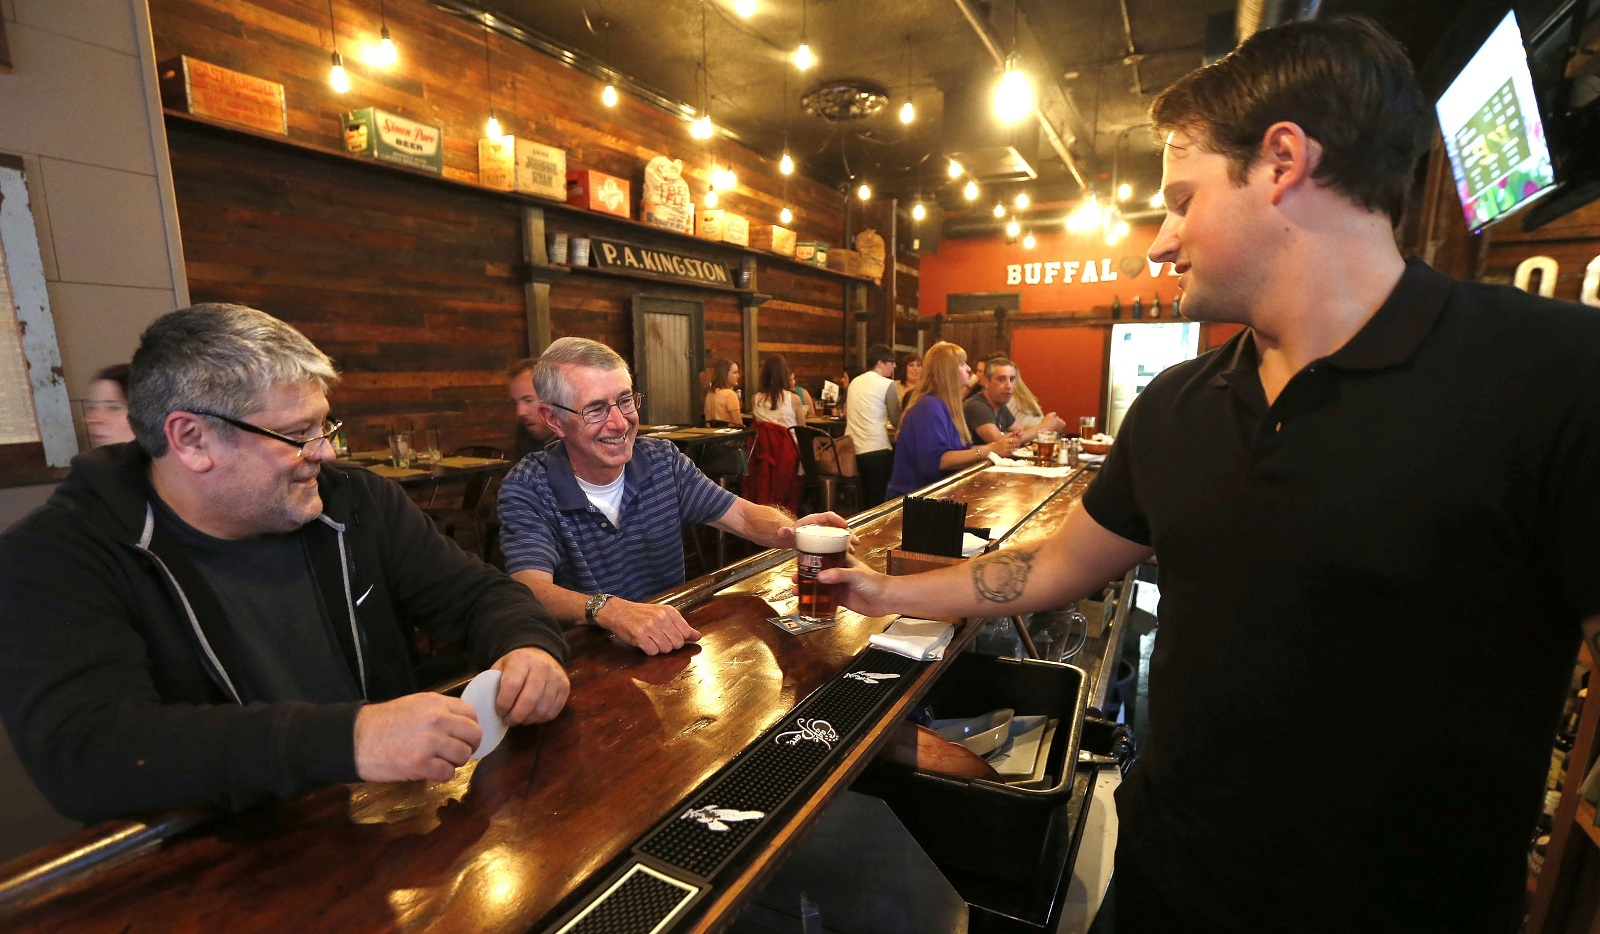 Patrons Alan DePounceau, of Buffalo, left, and Chris Kennedy, center, of the Town of Tonawanda grab a couple of pints from bartender Jordan Schmidt, right, at Local Kitchen & Beer Bar. (Robert Kirkham/Buffalo News)